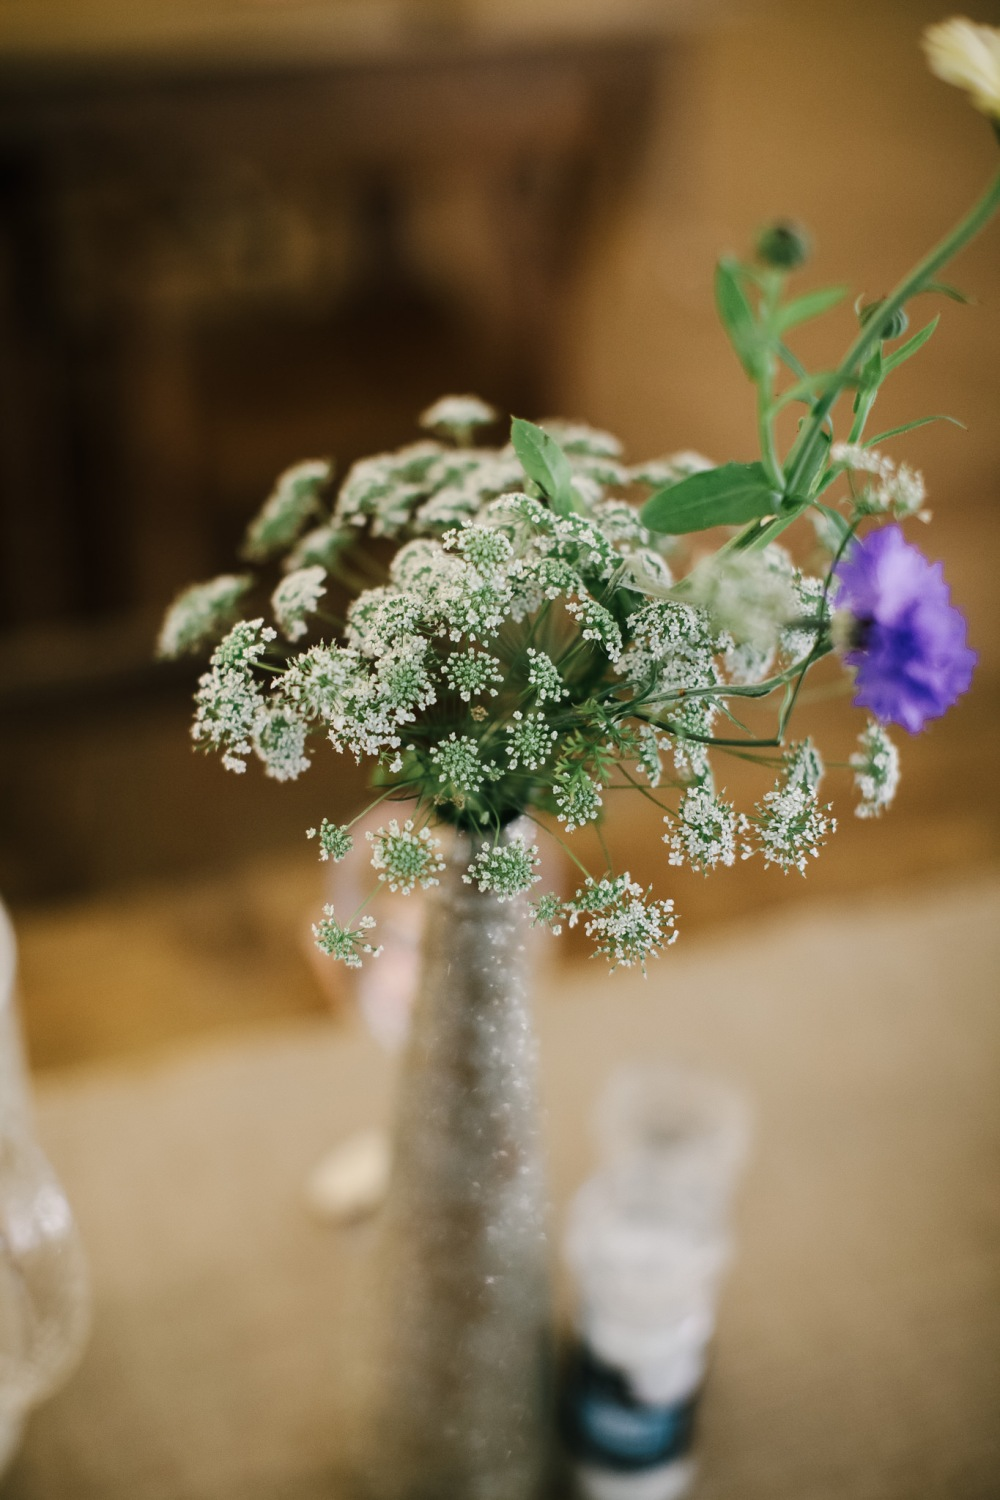 Claire and Tom, Mum's handmade table arrangements, Real DIY Weddings, Swan Cottage Flowers at Woodland Weddings